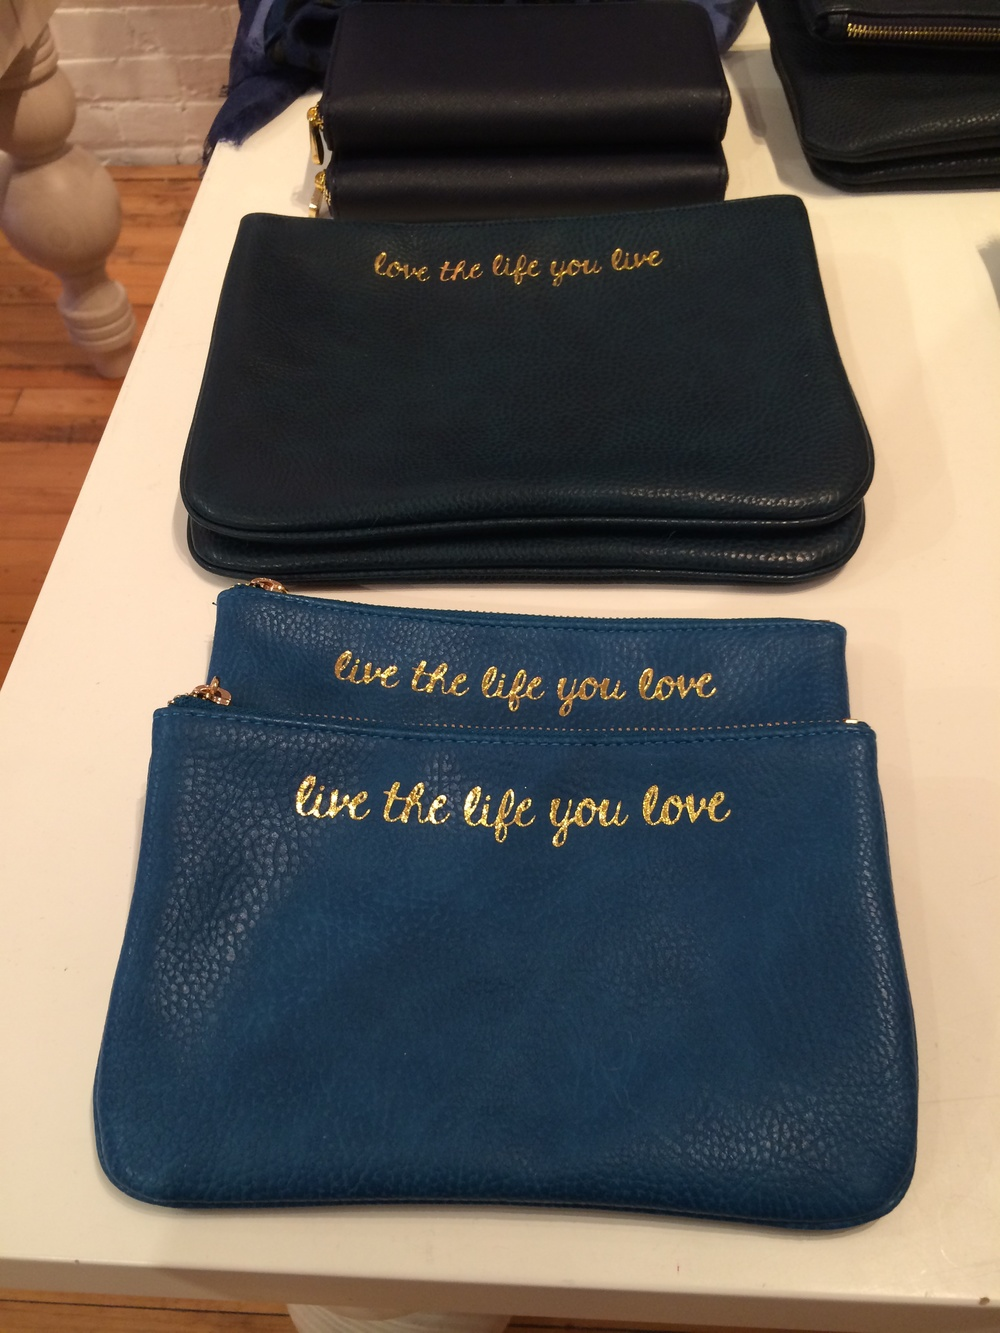 "Loving the quote on these - ""live the life you love"""